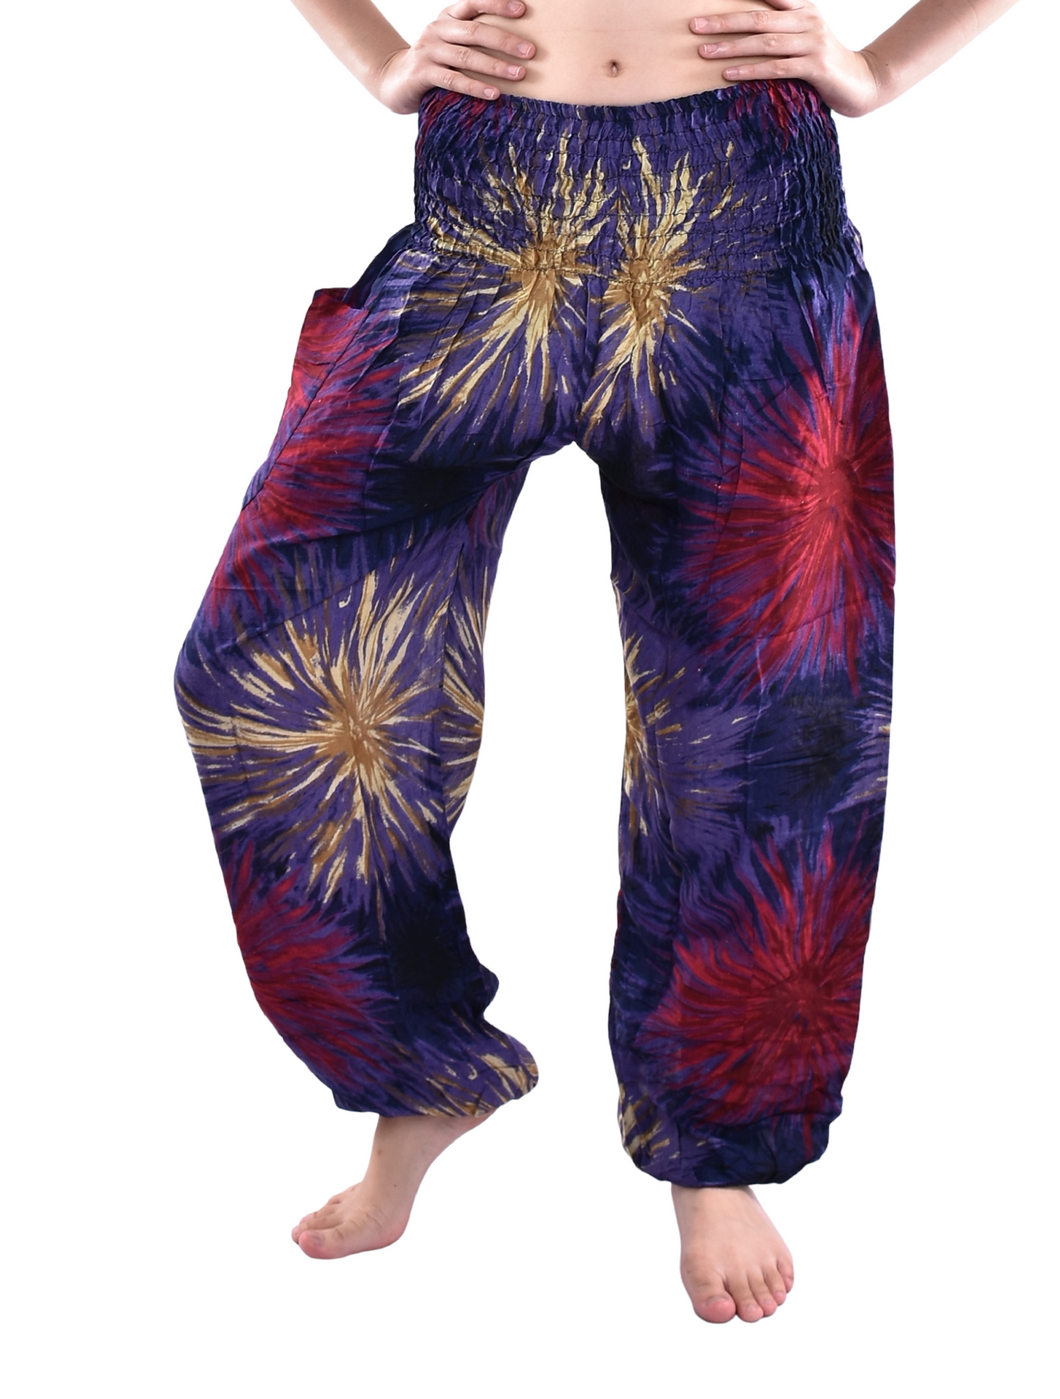 Bohotusk Navy Blue Firework Print Elasticated Smocked Waist Womens Harem Pants